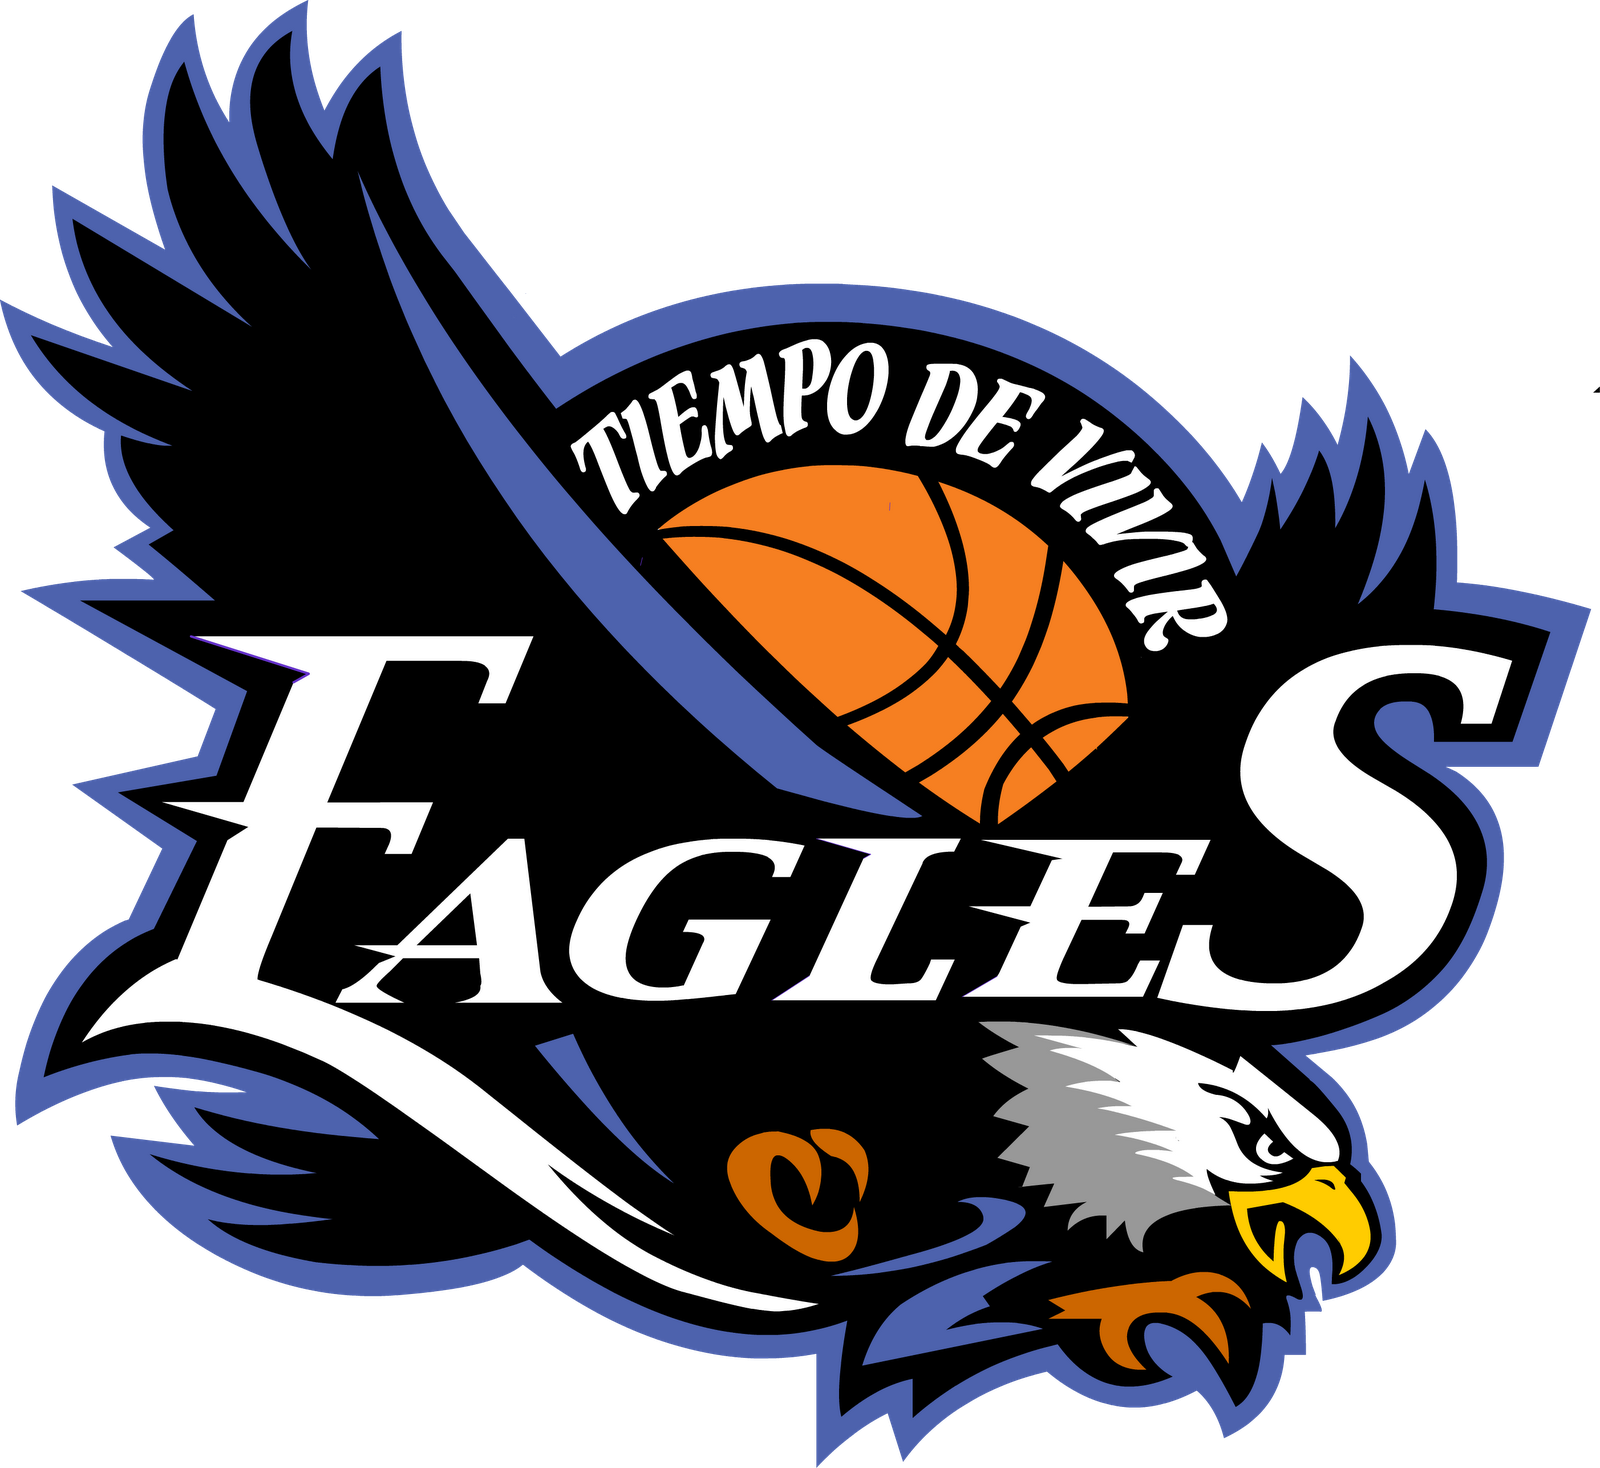 Eagles Basketball Team Logo Clipart.